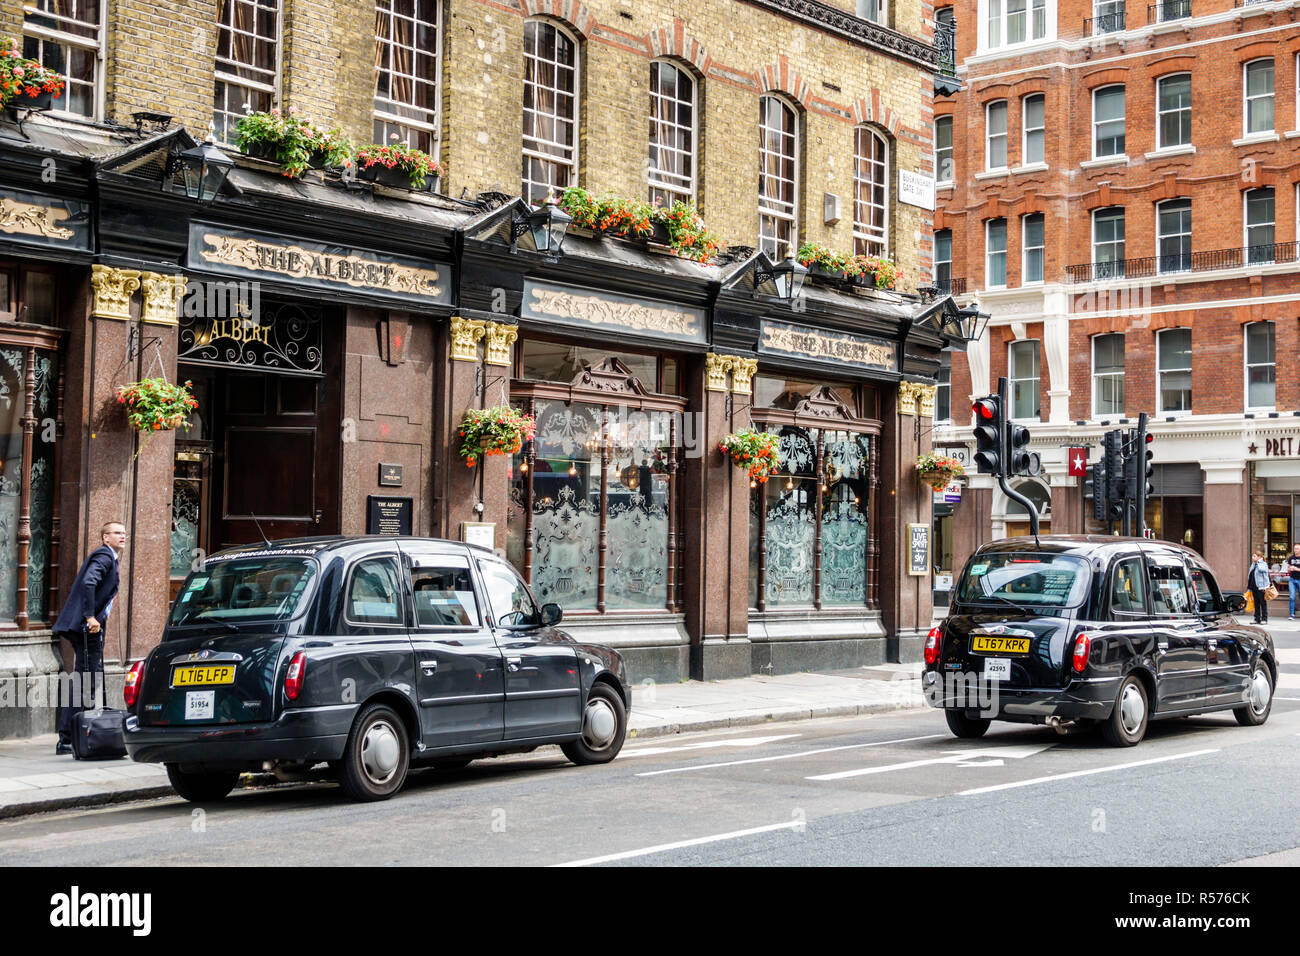 London England United Kingdom Great Britain Westminster Victoria Street The Albert Pub Victorian public house building exterior black taxicab taxi hac - Stock Image